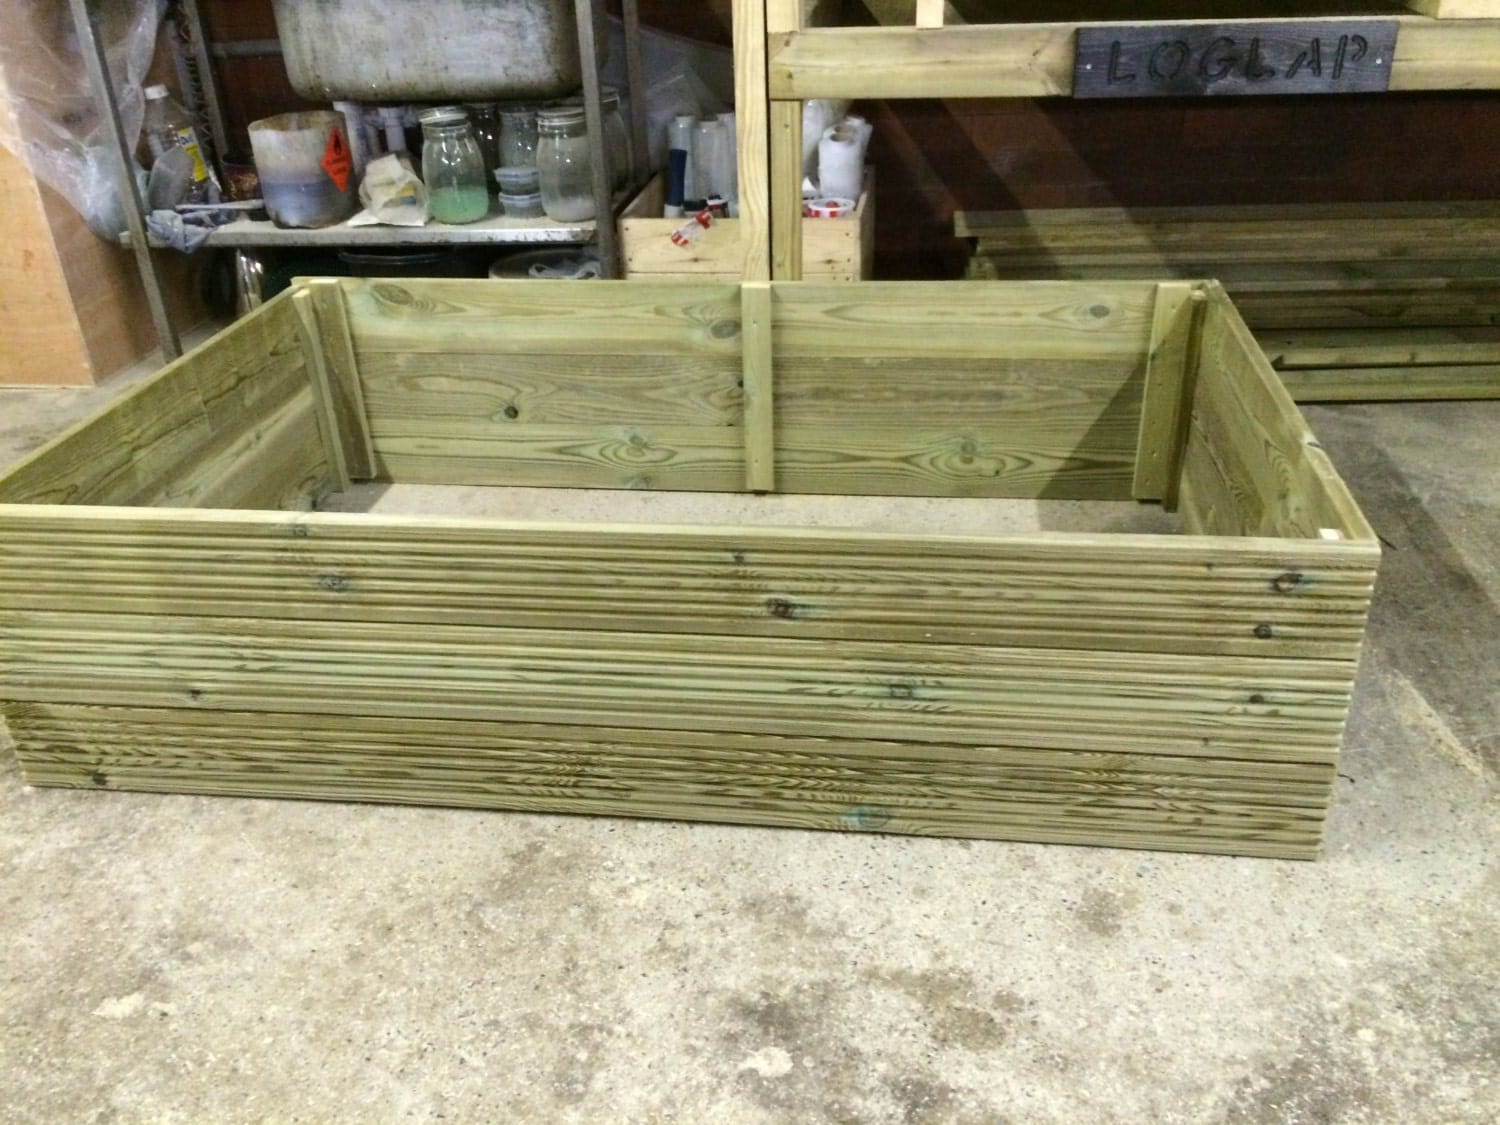 Tanalised decking raised bed garden planter bnib by ebayrebel for Tanalised timber decking